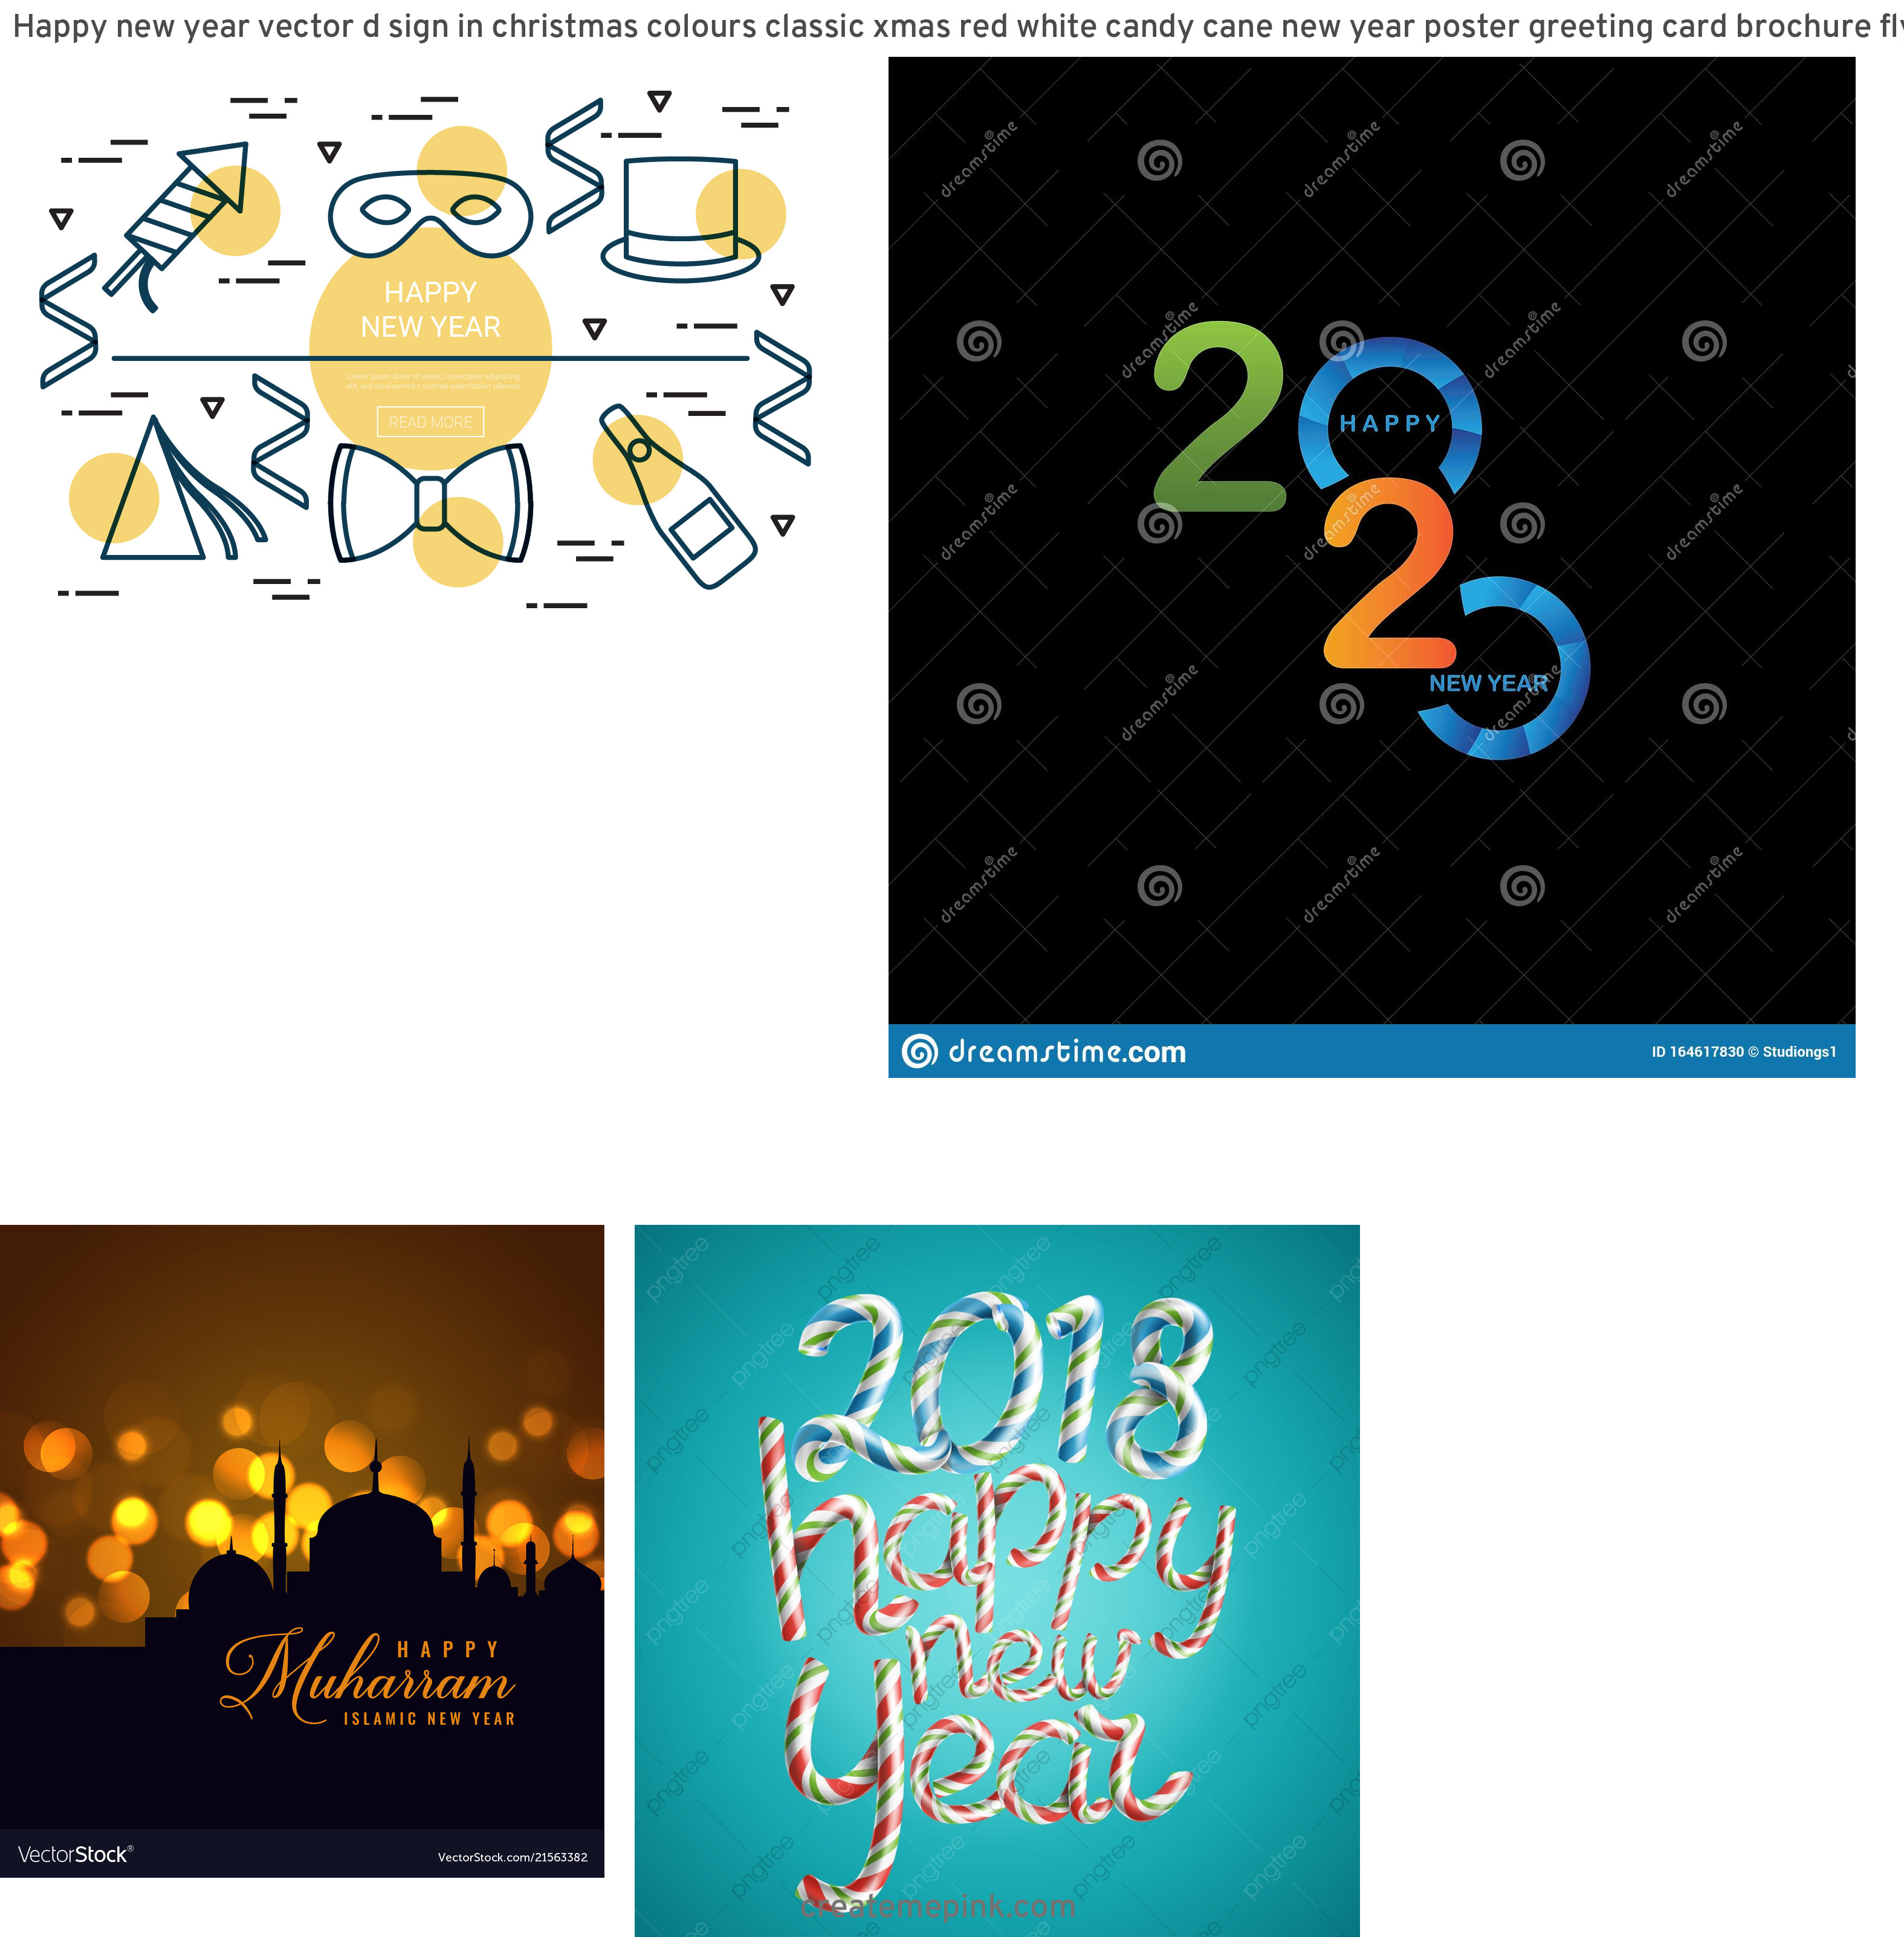 Free New Year Vector: Happy New Year Vector D Sign In Christmas Colours Classic Xmas Red White Candy Cane New Year Poster Greeting Card Brochure Flyer Typography Template Design Isolated Illustration